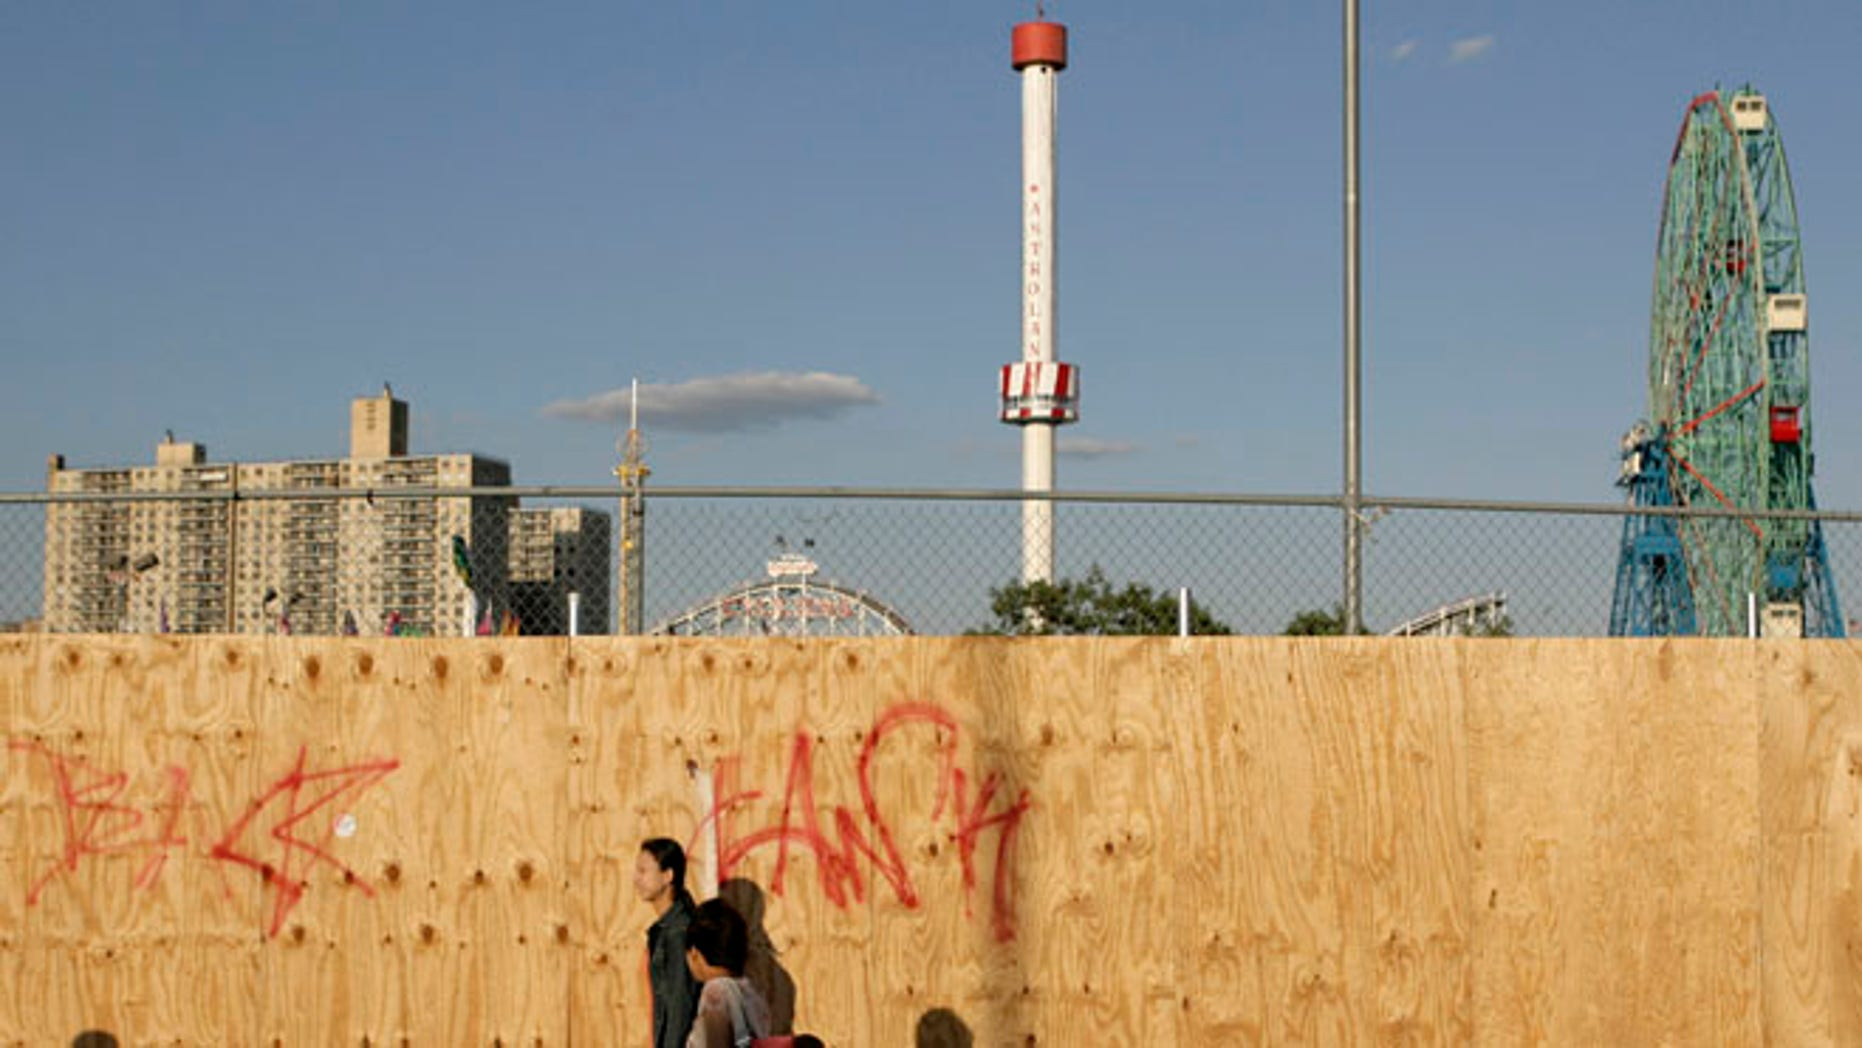 June 6, 2007: In this file photo, pedestrians walk past a boarded up section of the Coney Island amusement district in the Brooklyn borough of New York with the Astrotower rising in the background.